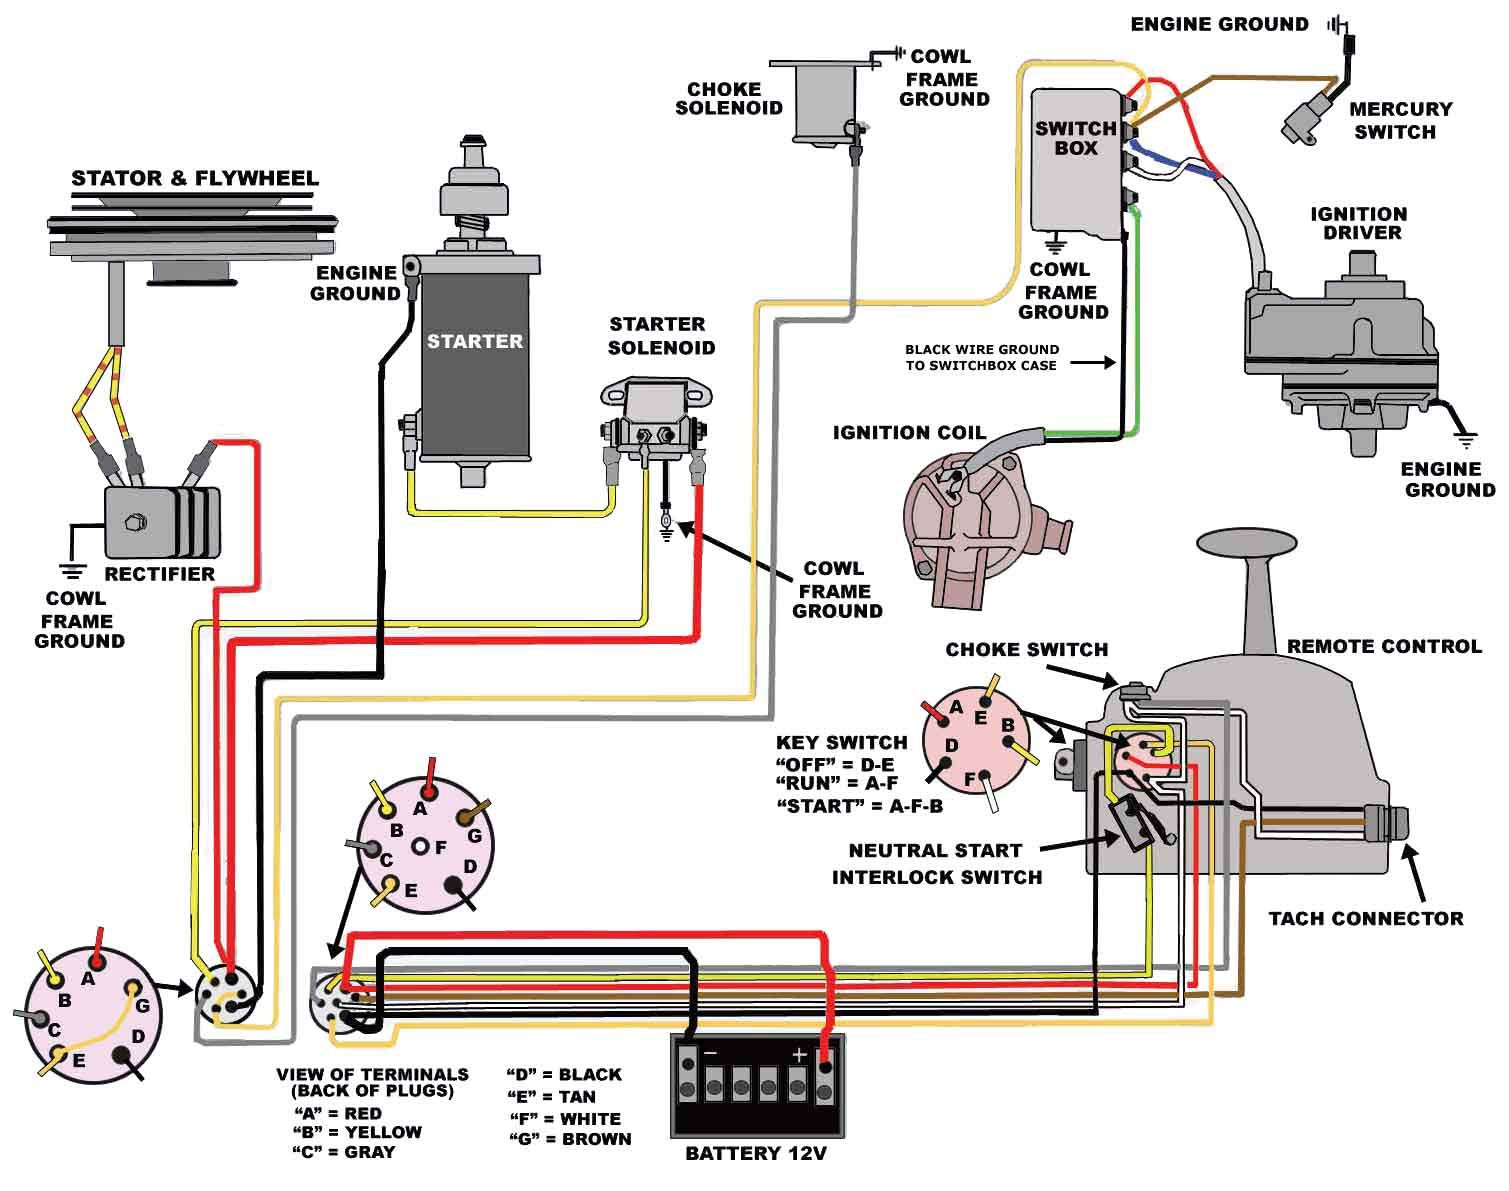 mercury outboard ignition wiring everything wiring diagrammercury outboard ignition wiring diagram wiring diagram experts mercury outboard ignition switch wiring mercury outboard ignition wiring